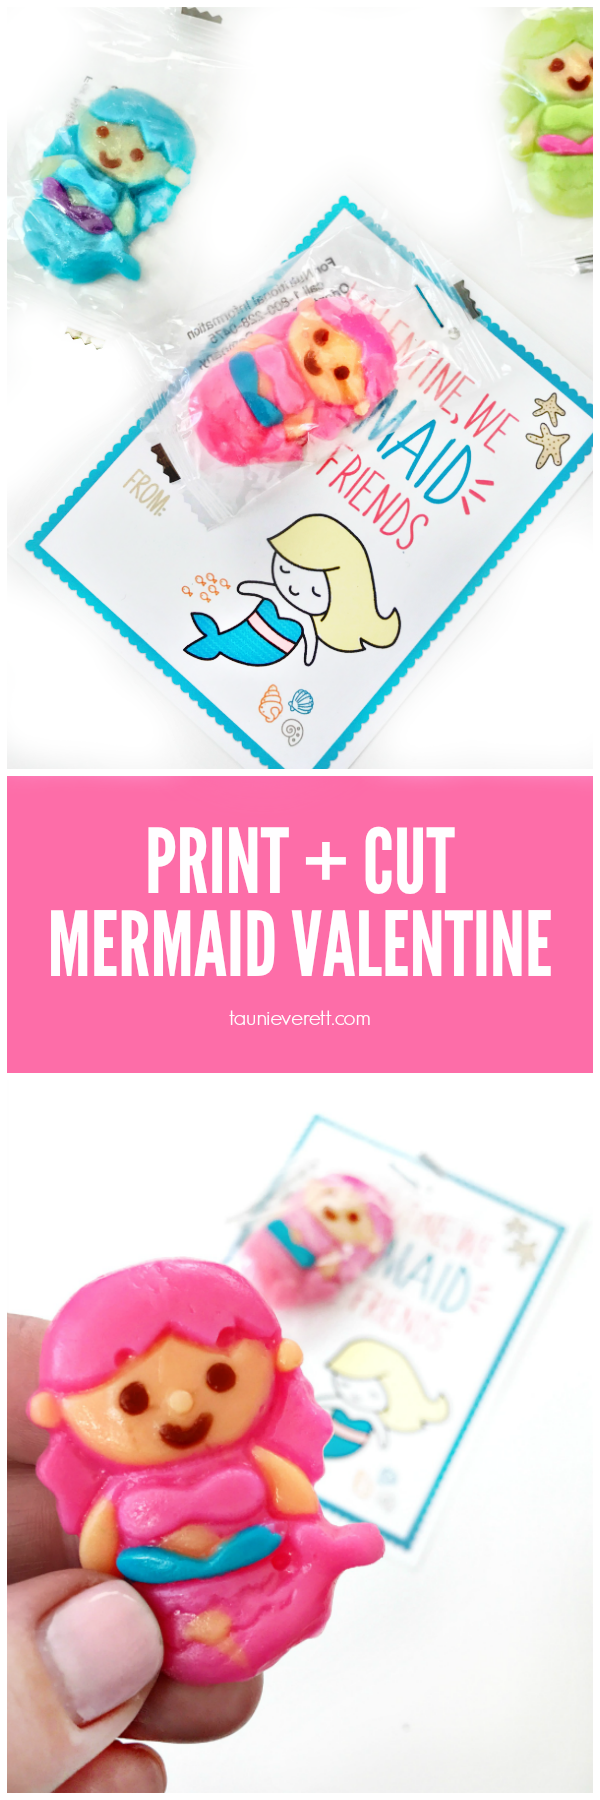 Mermaid Printable Valentine